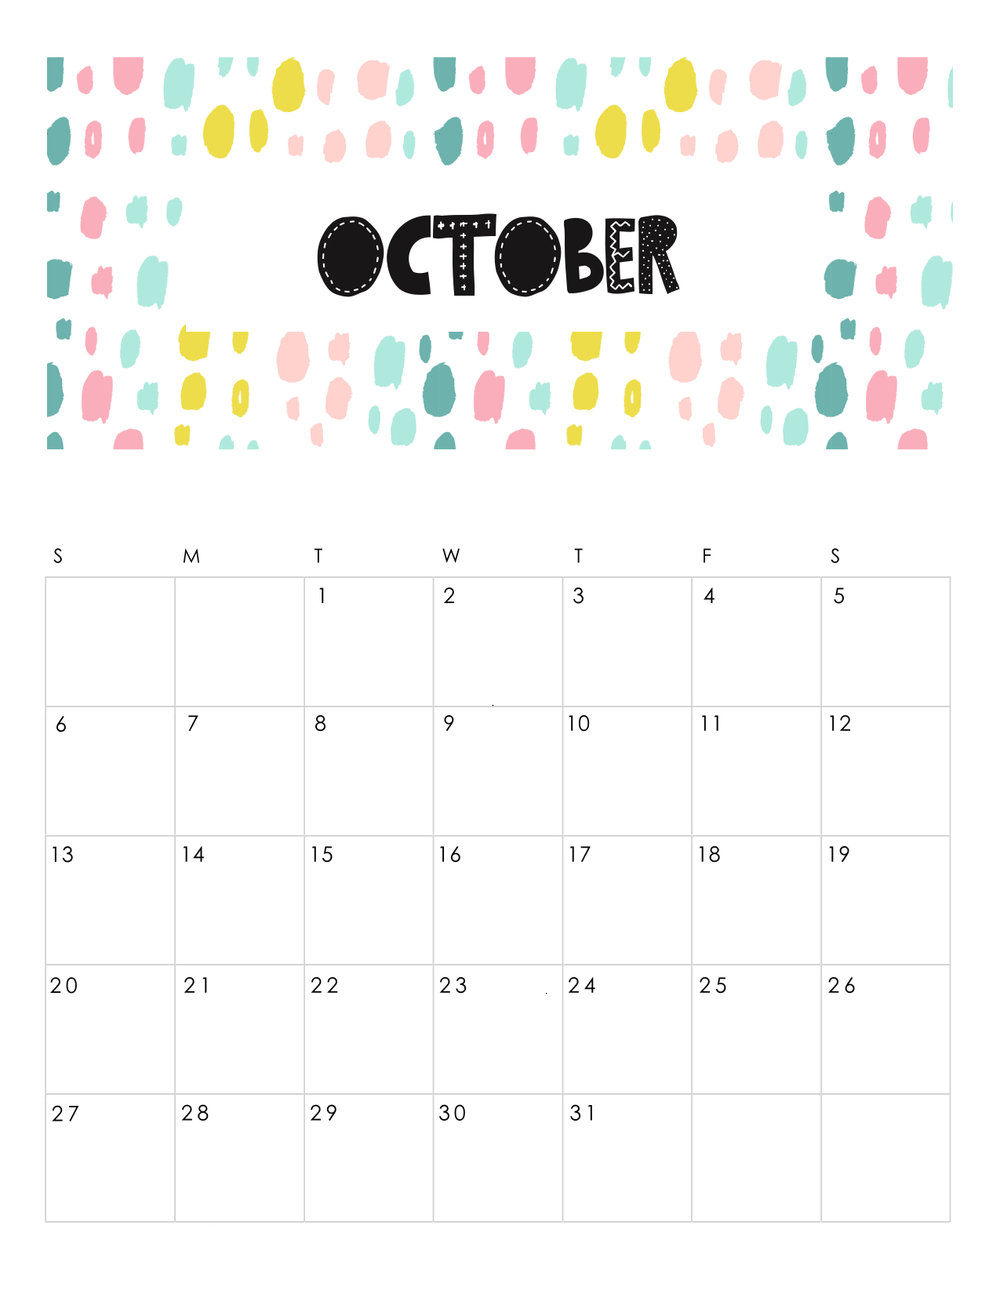 free-printable-abstract-patterned-calendar-2019-OCTOBER.JPG